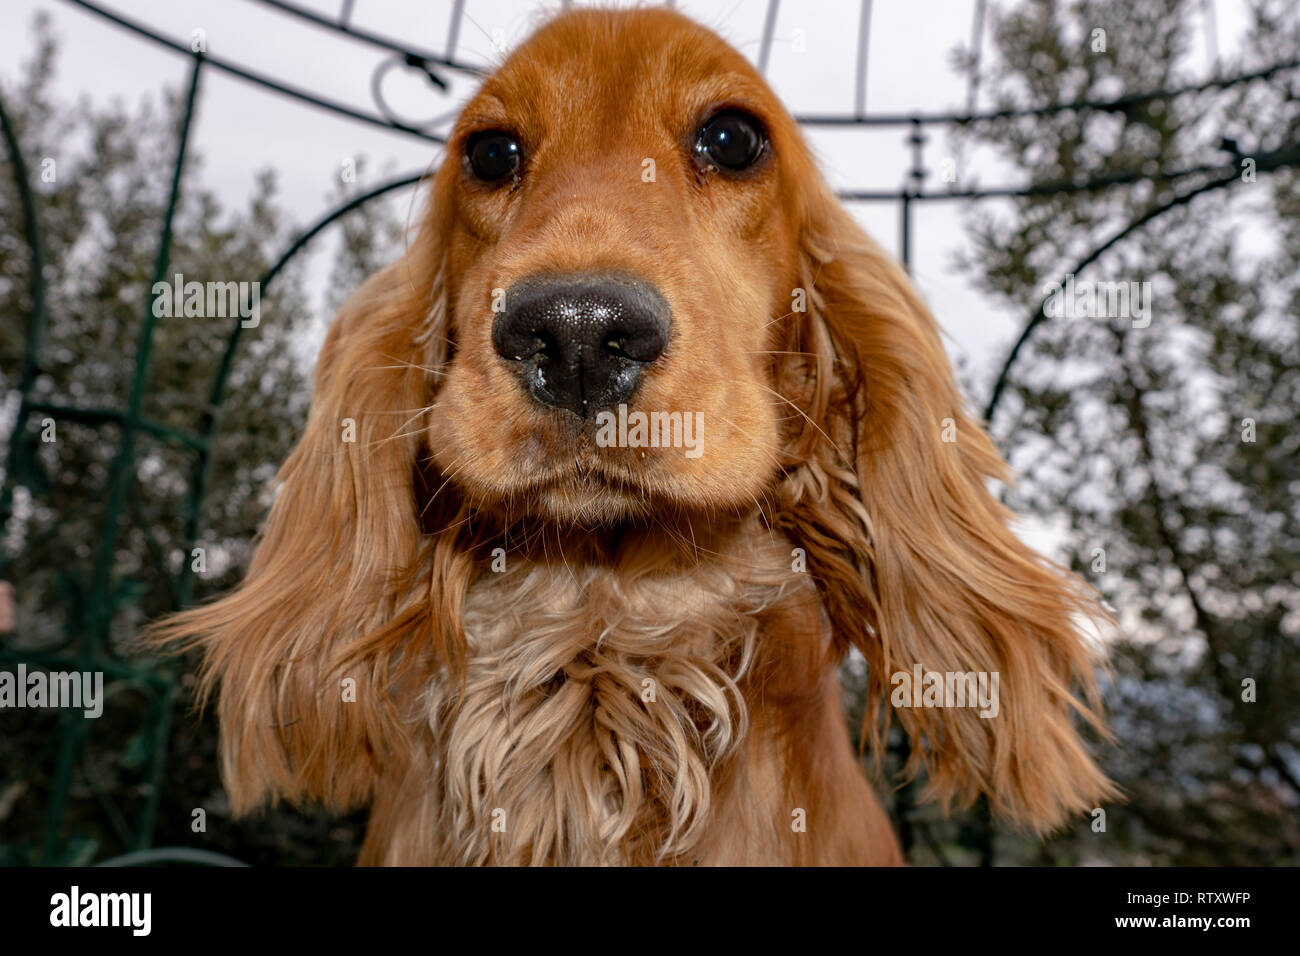 Adorable Baby Puppy Dog Cocker Spaniel Portrait Looking At You In The Courtyard Stock Photo Alamy